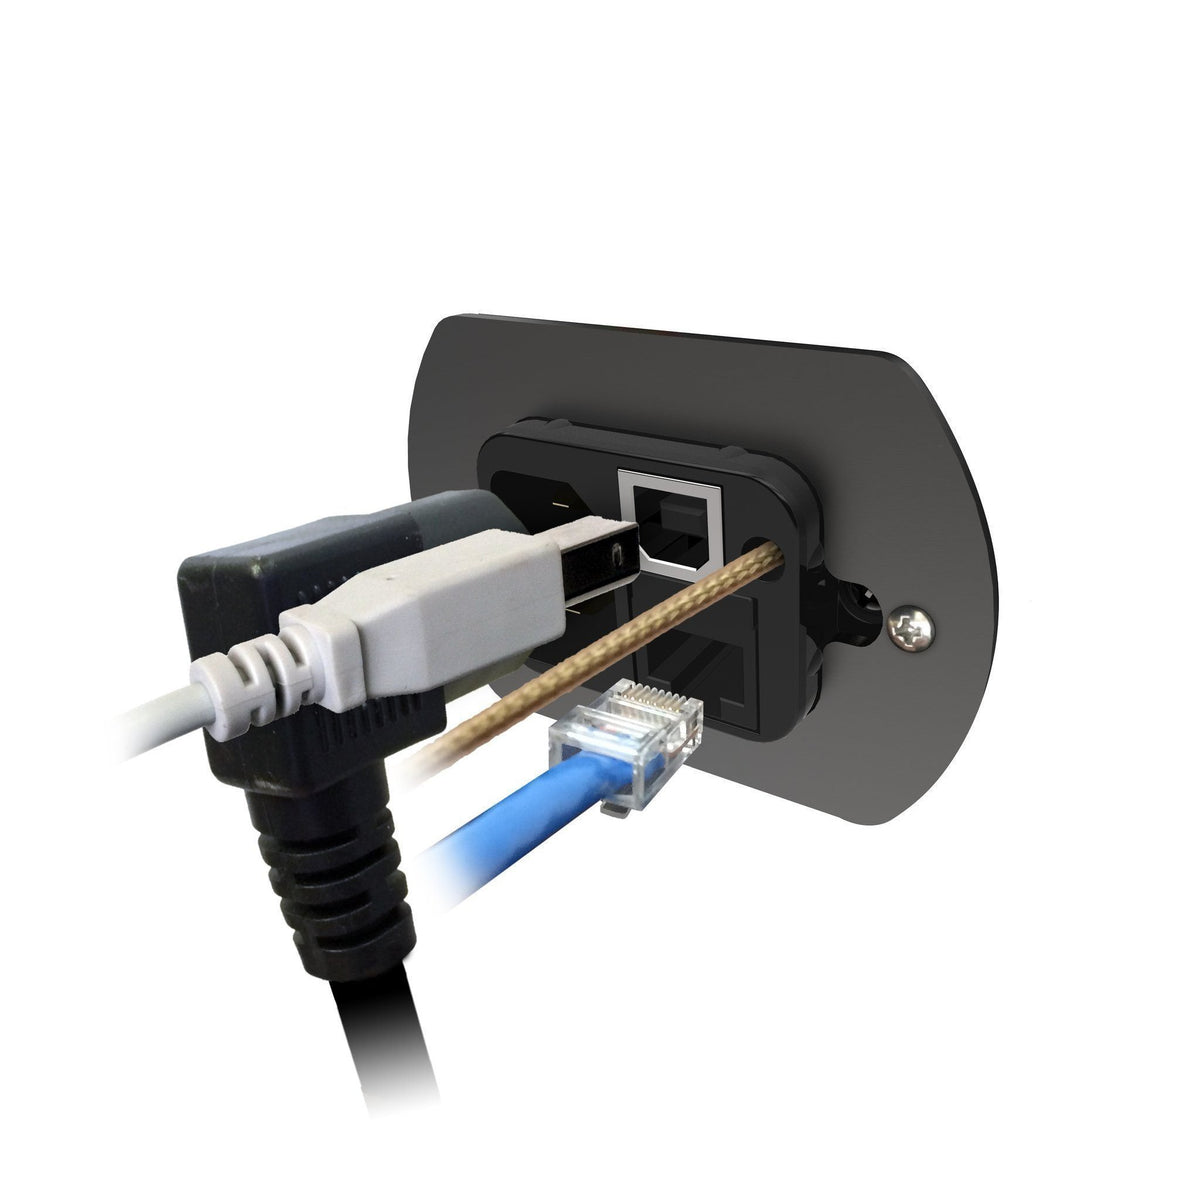 Accessory - Security - USB Power Outlet Kit